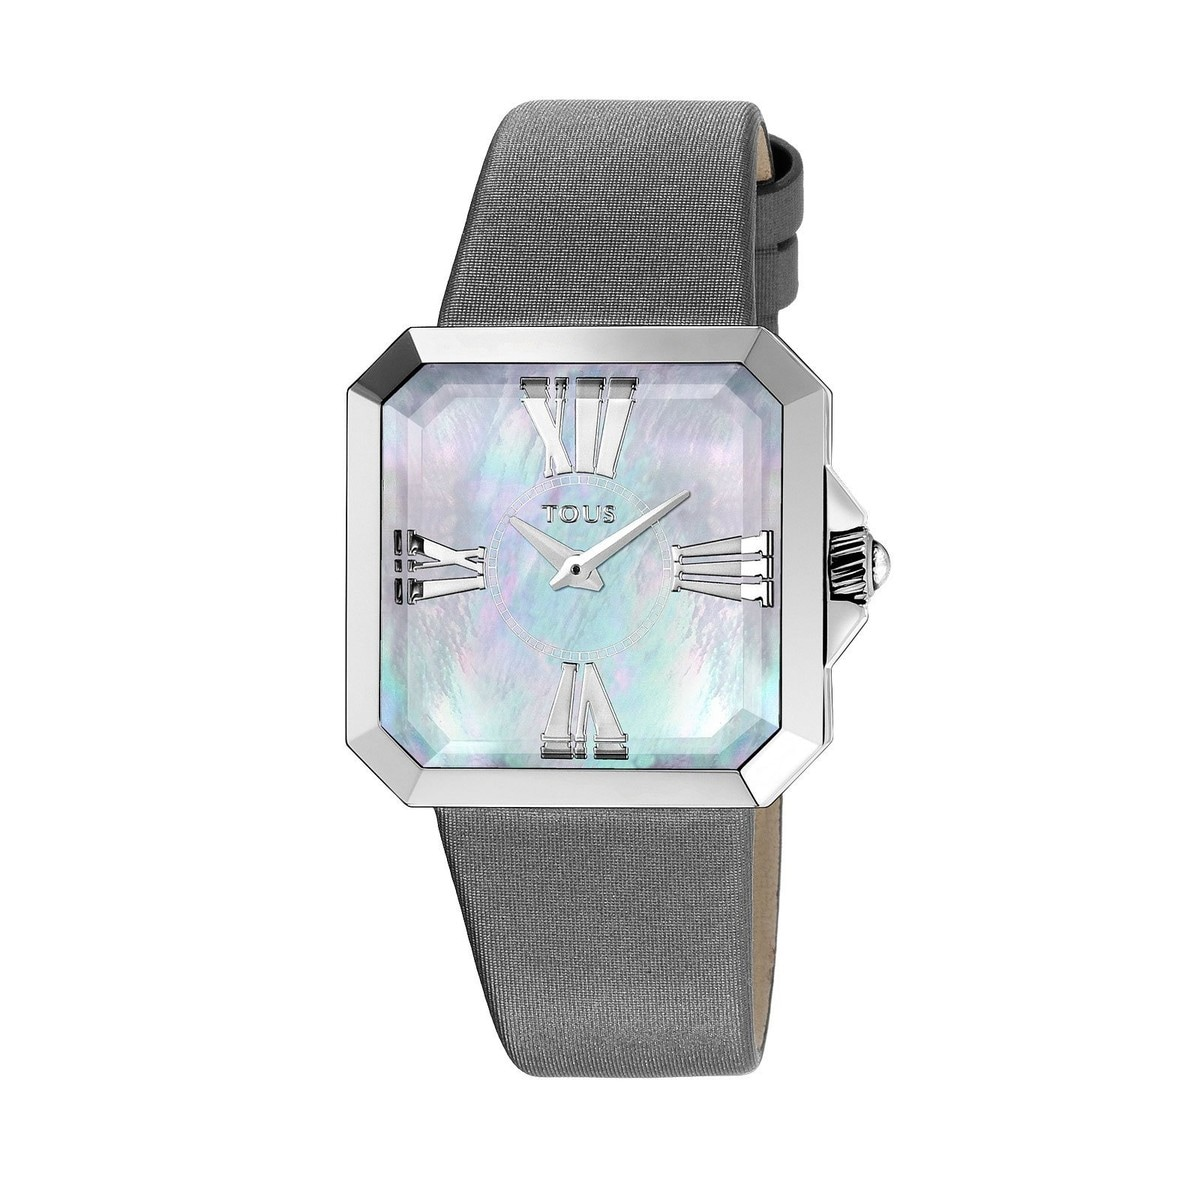 Steel Tresor Watch with gray Satin strap